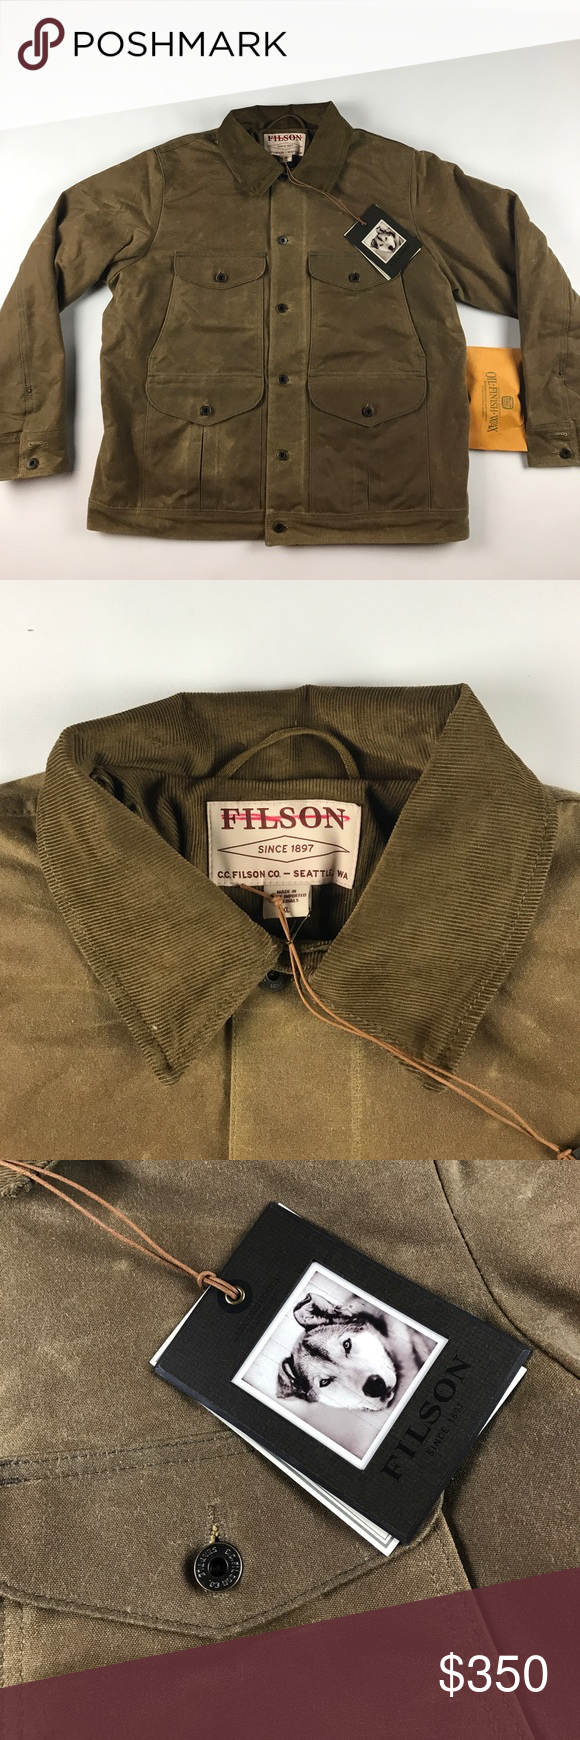 7a25bcc5c New Filson Insulated Journeyman Jacket Dark Tan New, comes with ...